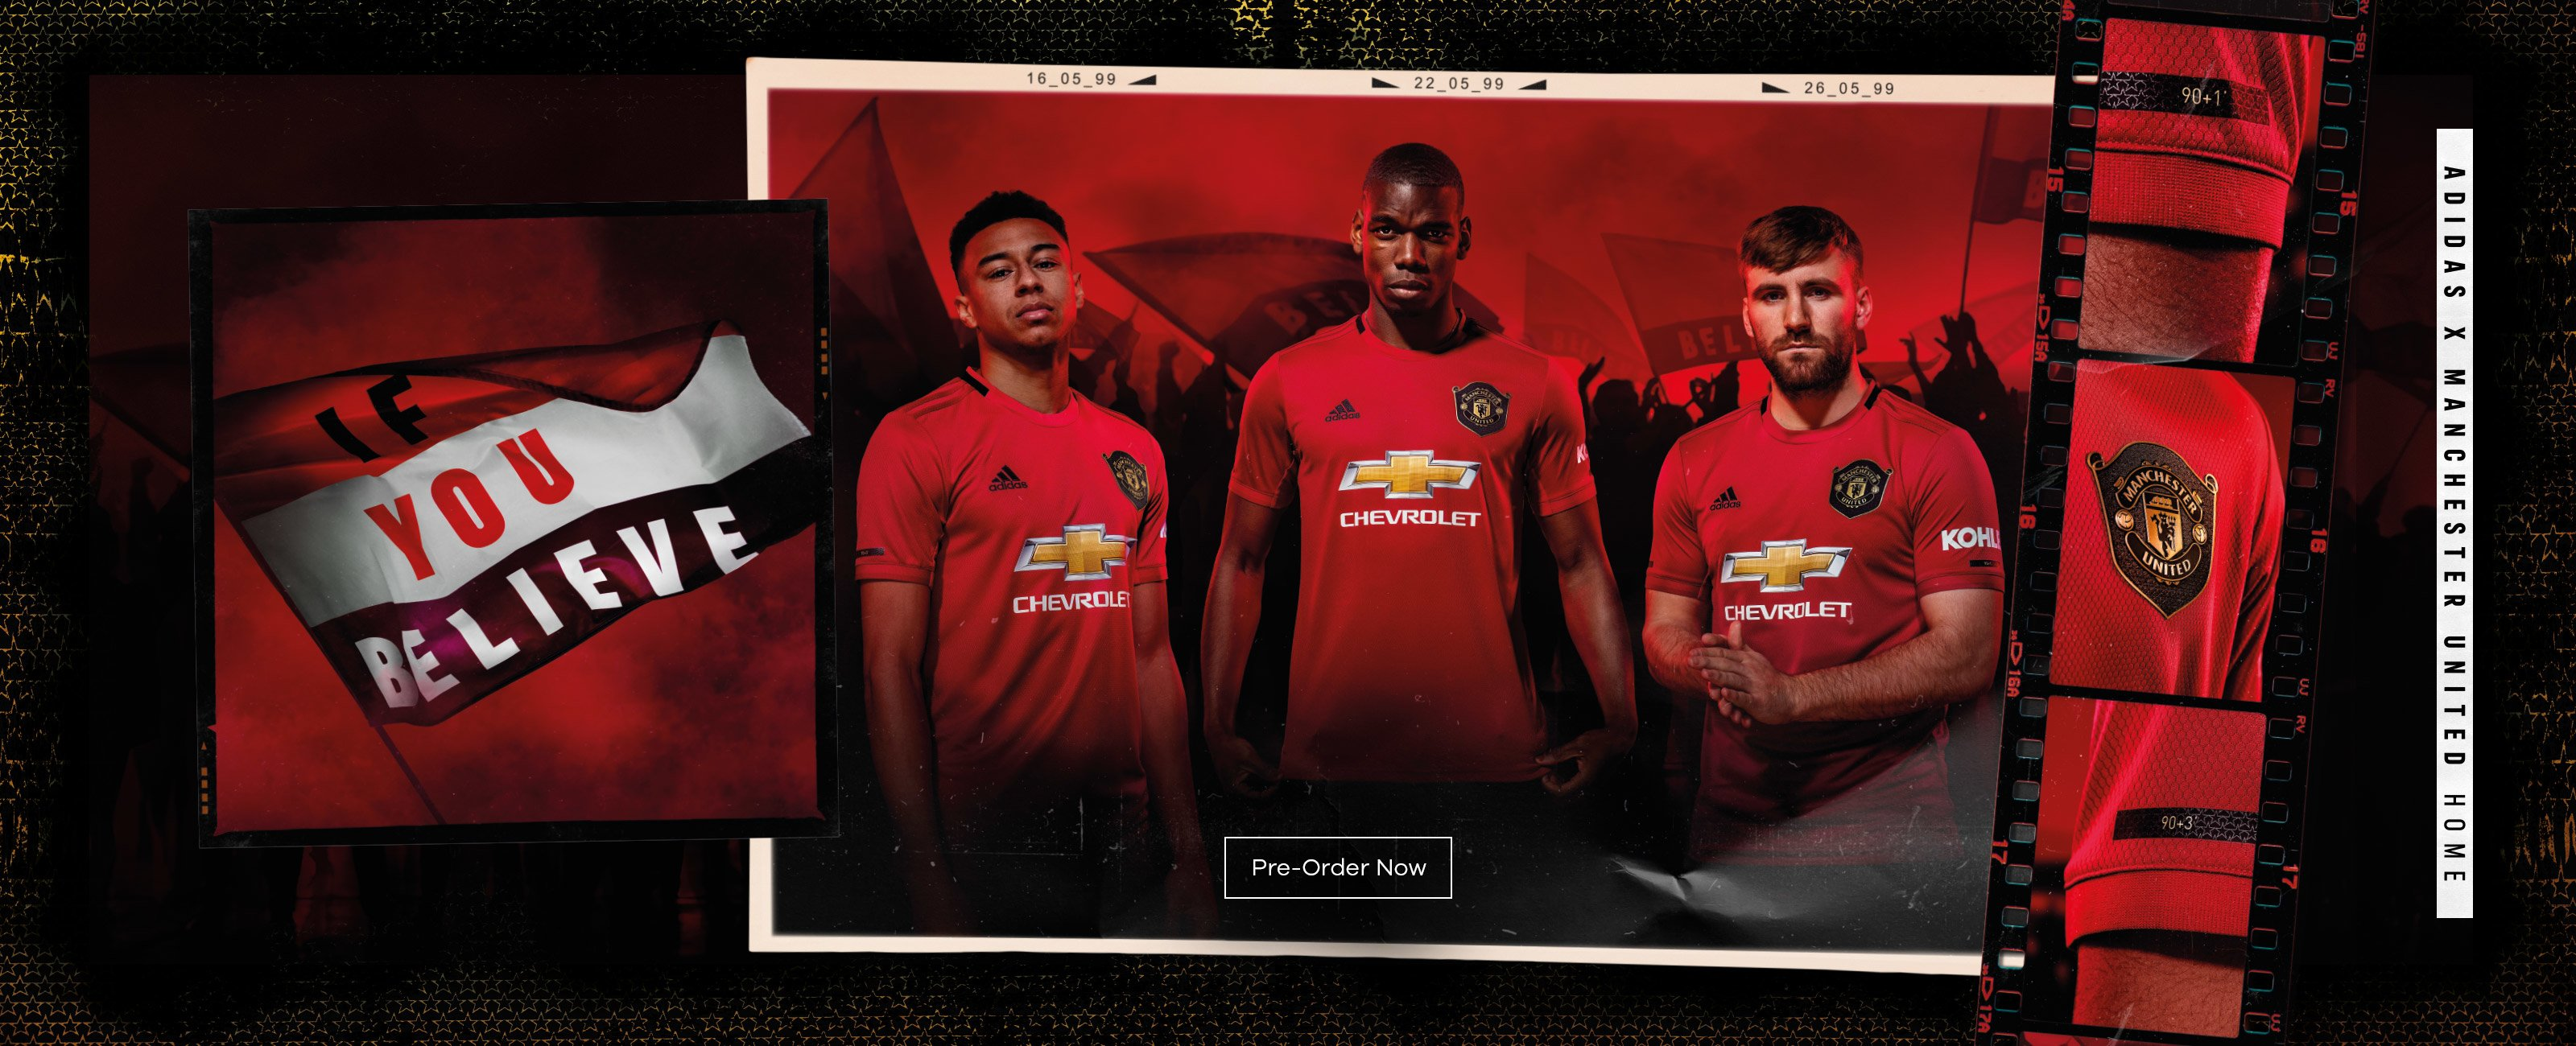 8556cf19b Manchester United T Shirts For Sale In South Africa